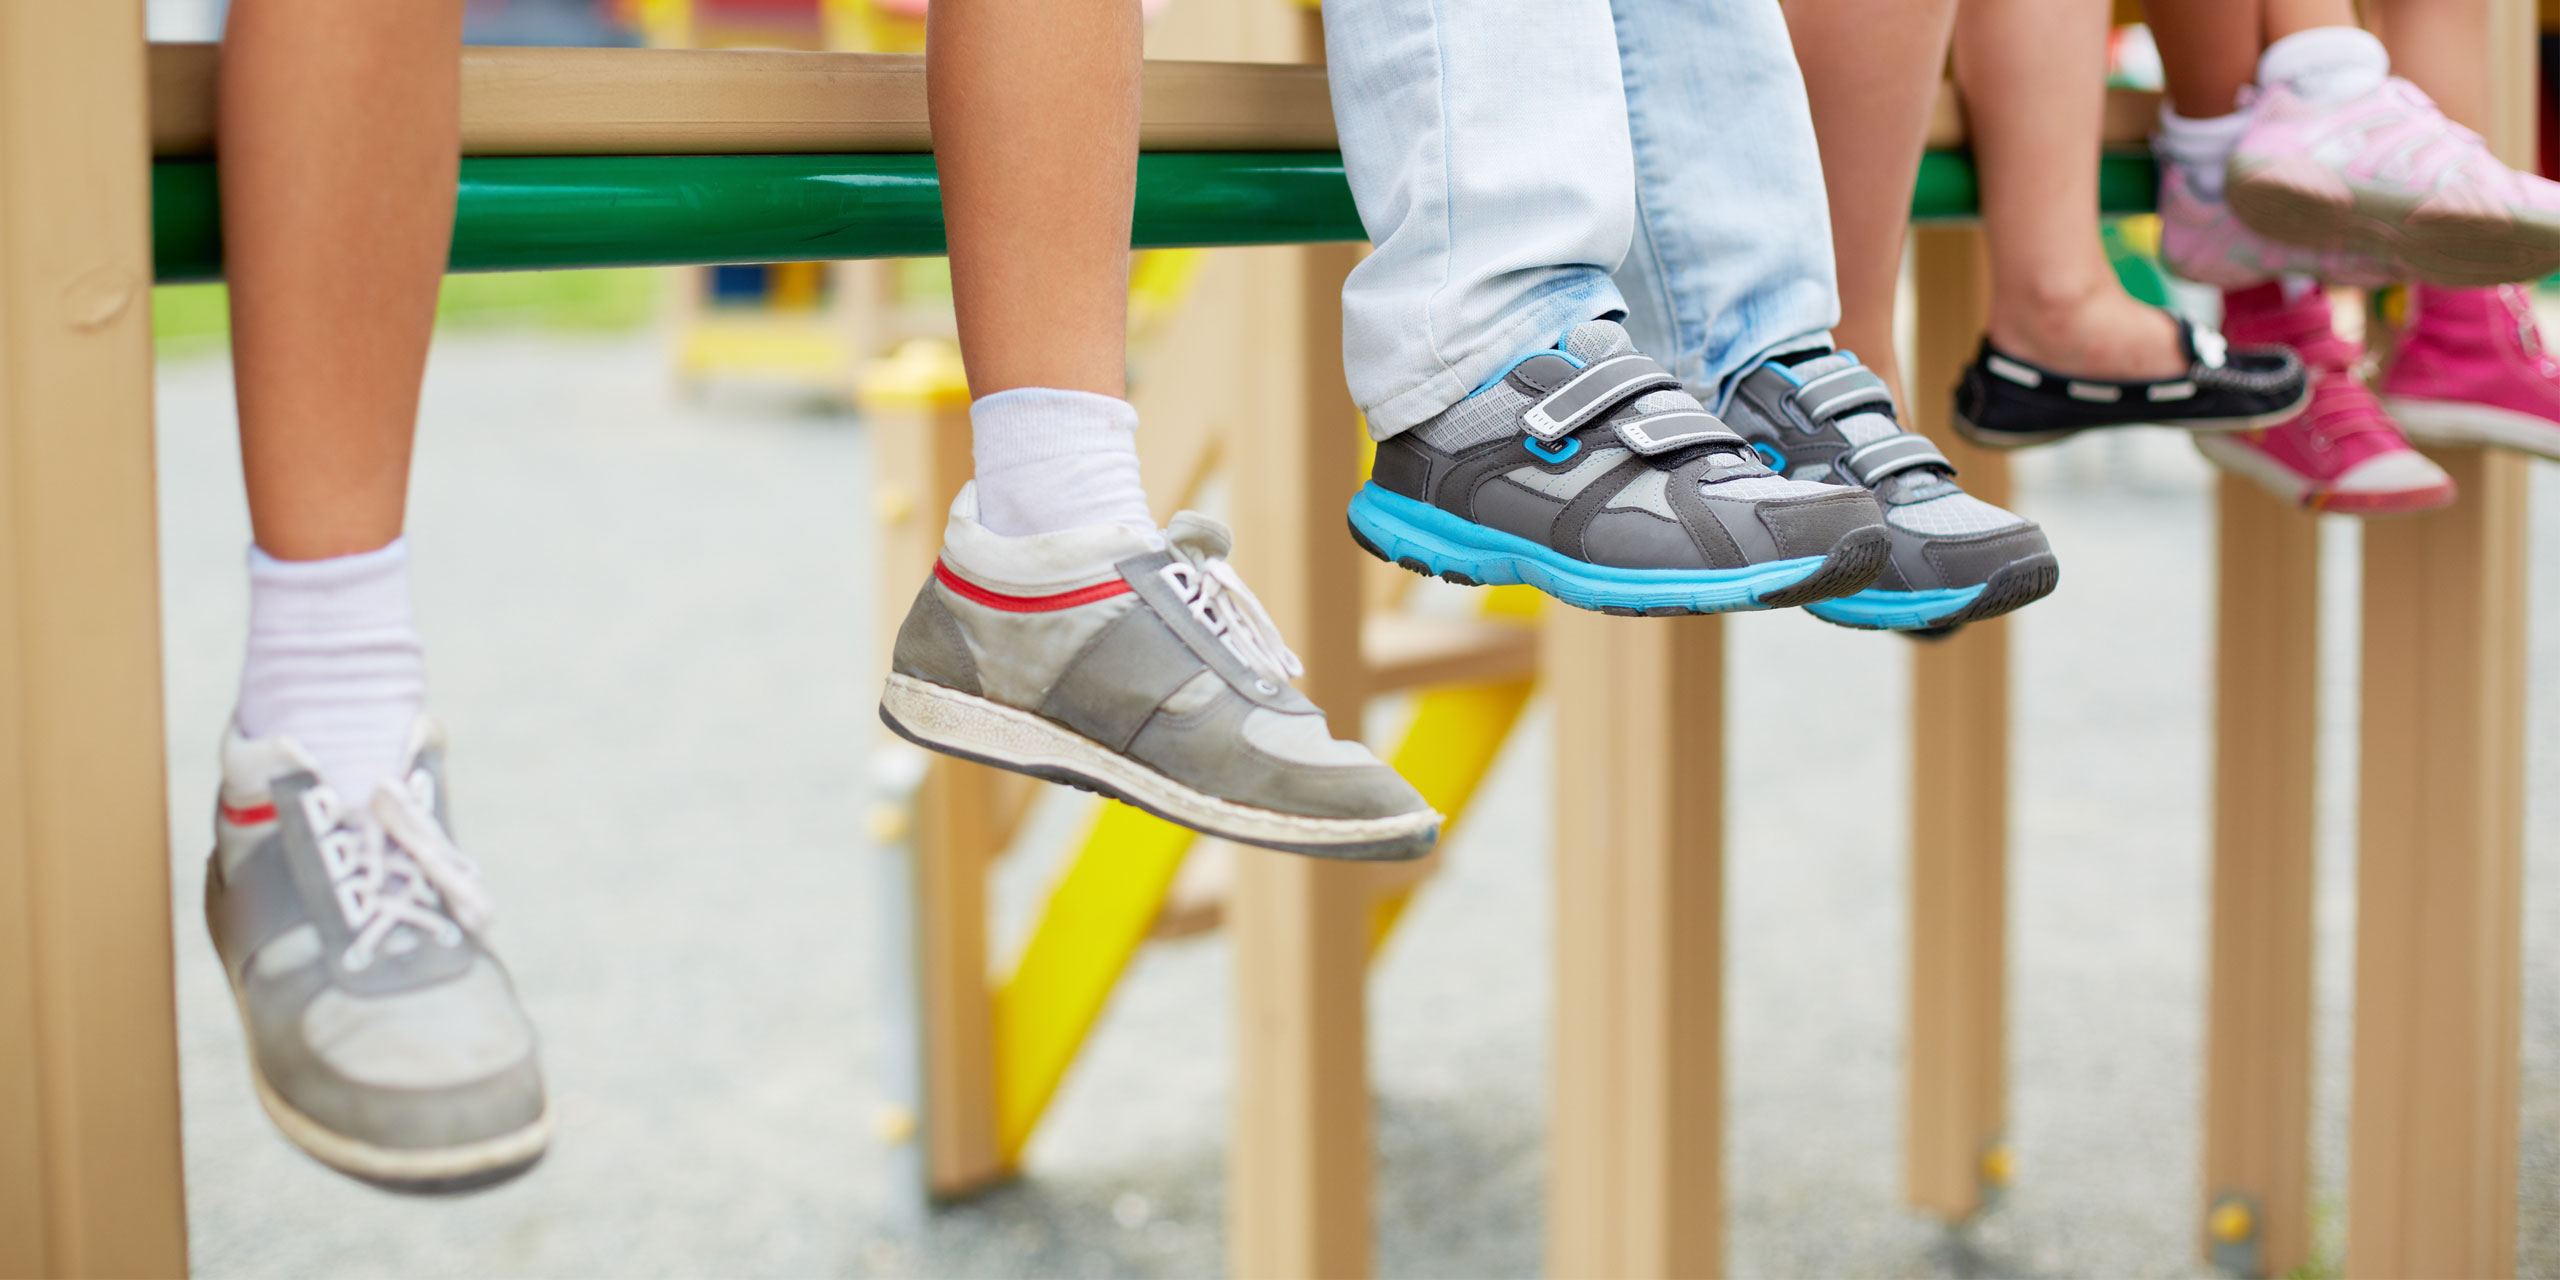 Kids Shoes; Courtesy of Pressmaster/Shutterstock.com